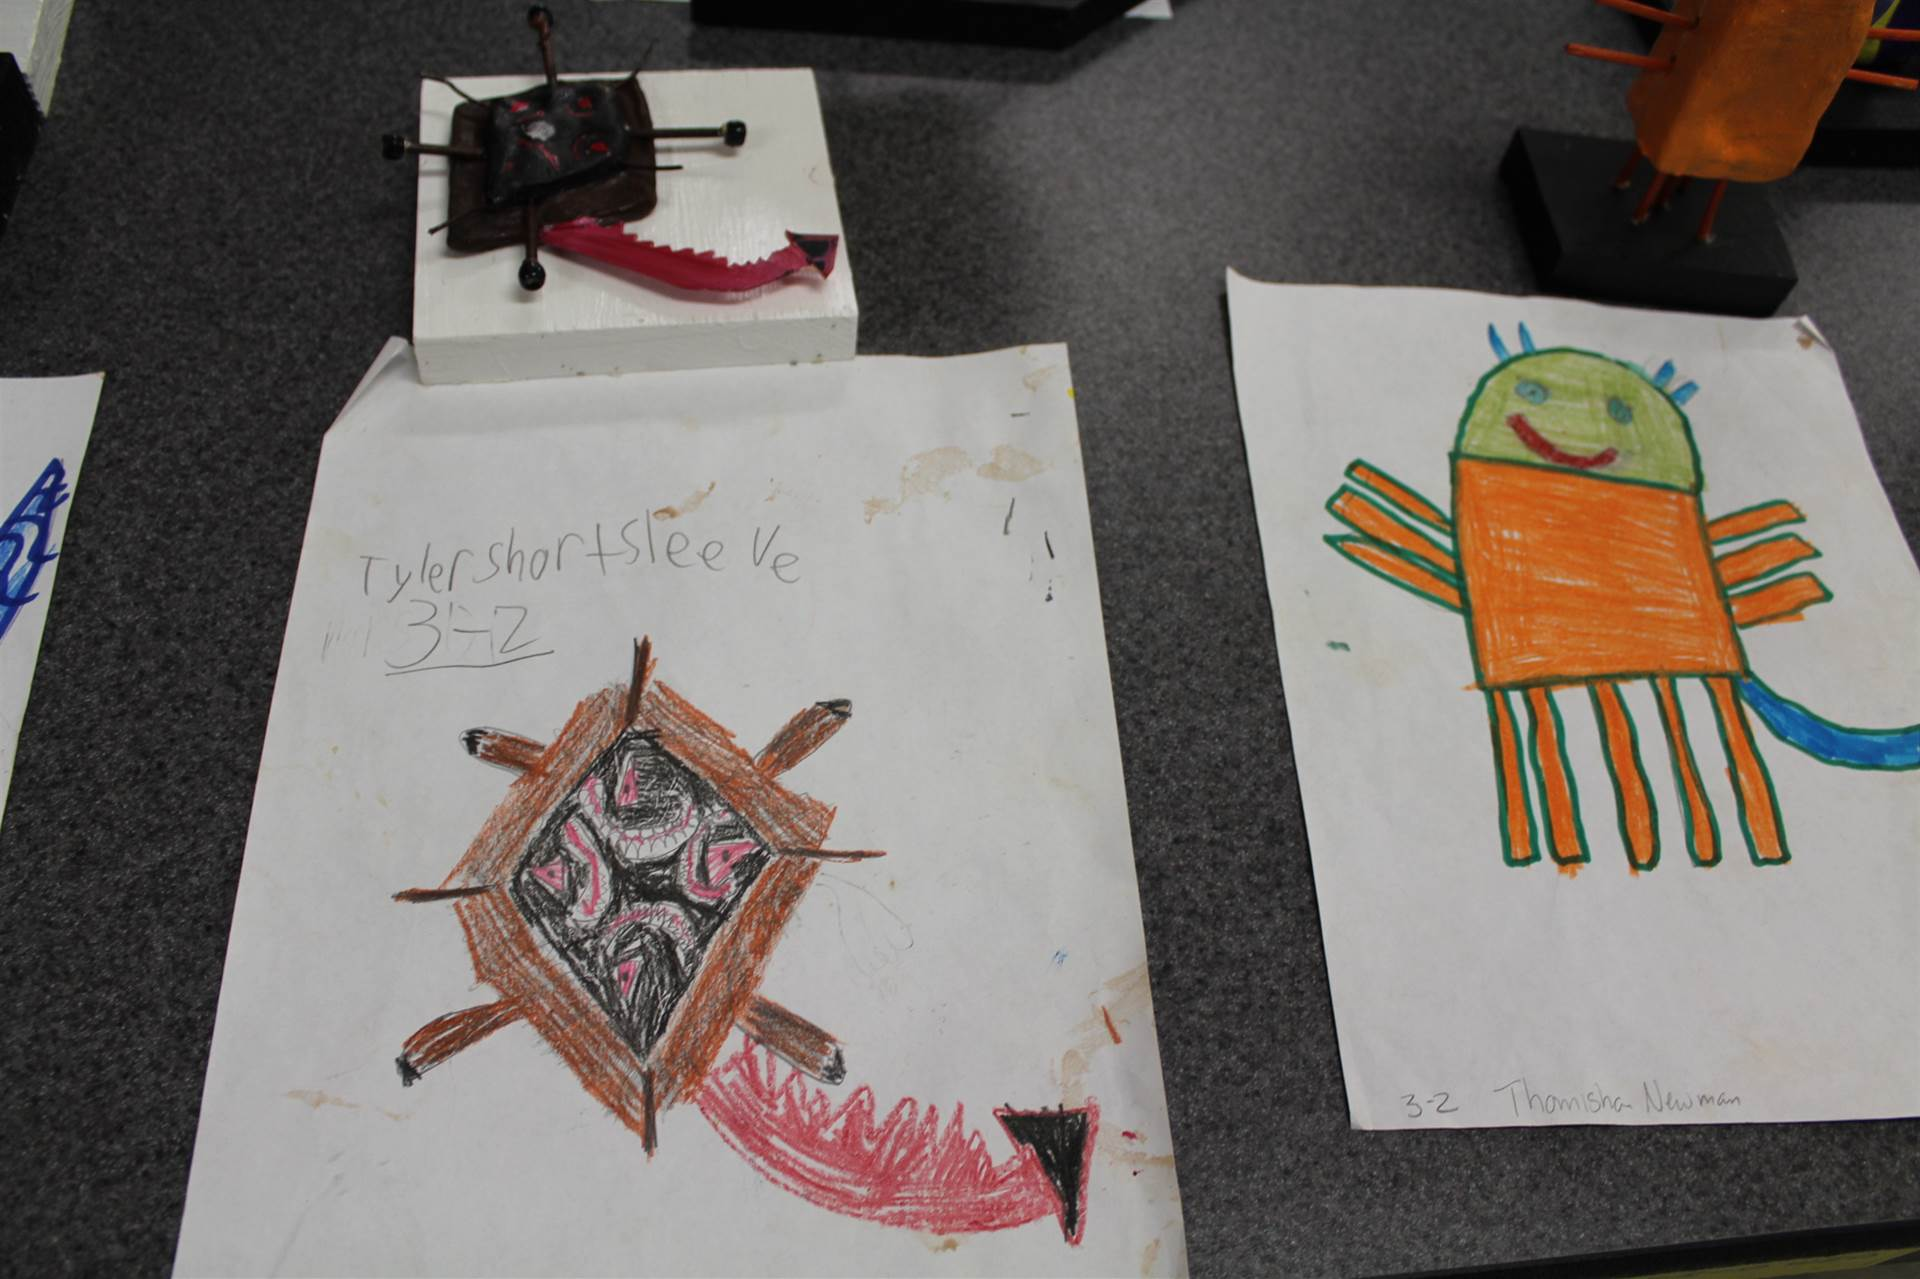 monster 3 d sculpture next to drawn picture 25